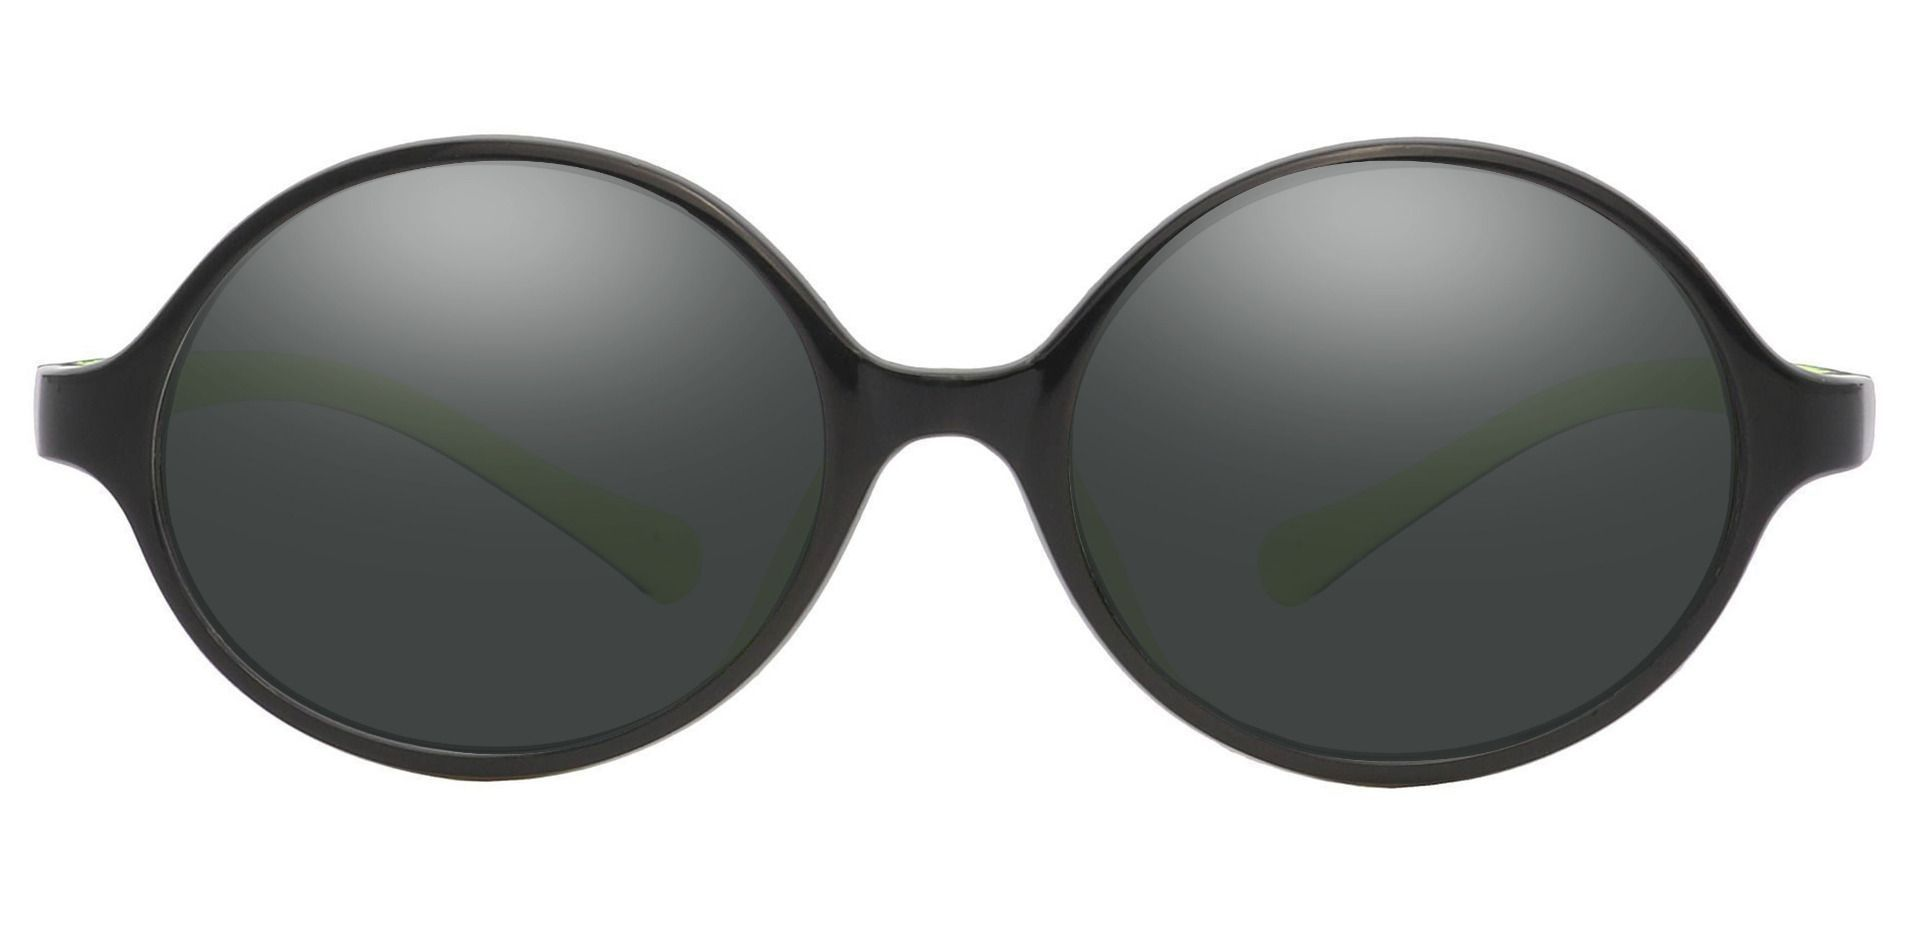 Dagwood Round Prescription Sunglasses - Black Frame With Gray Lenses